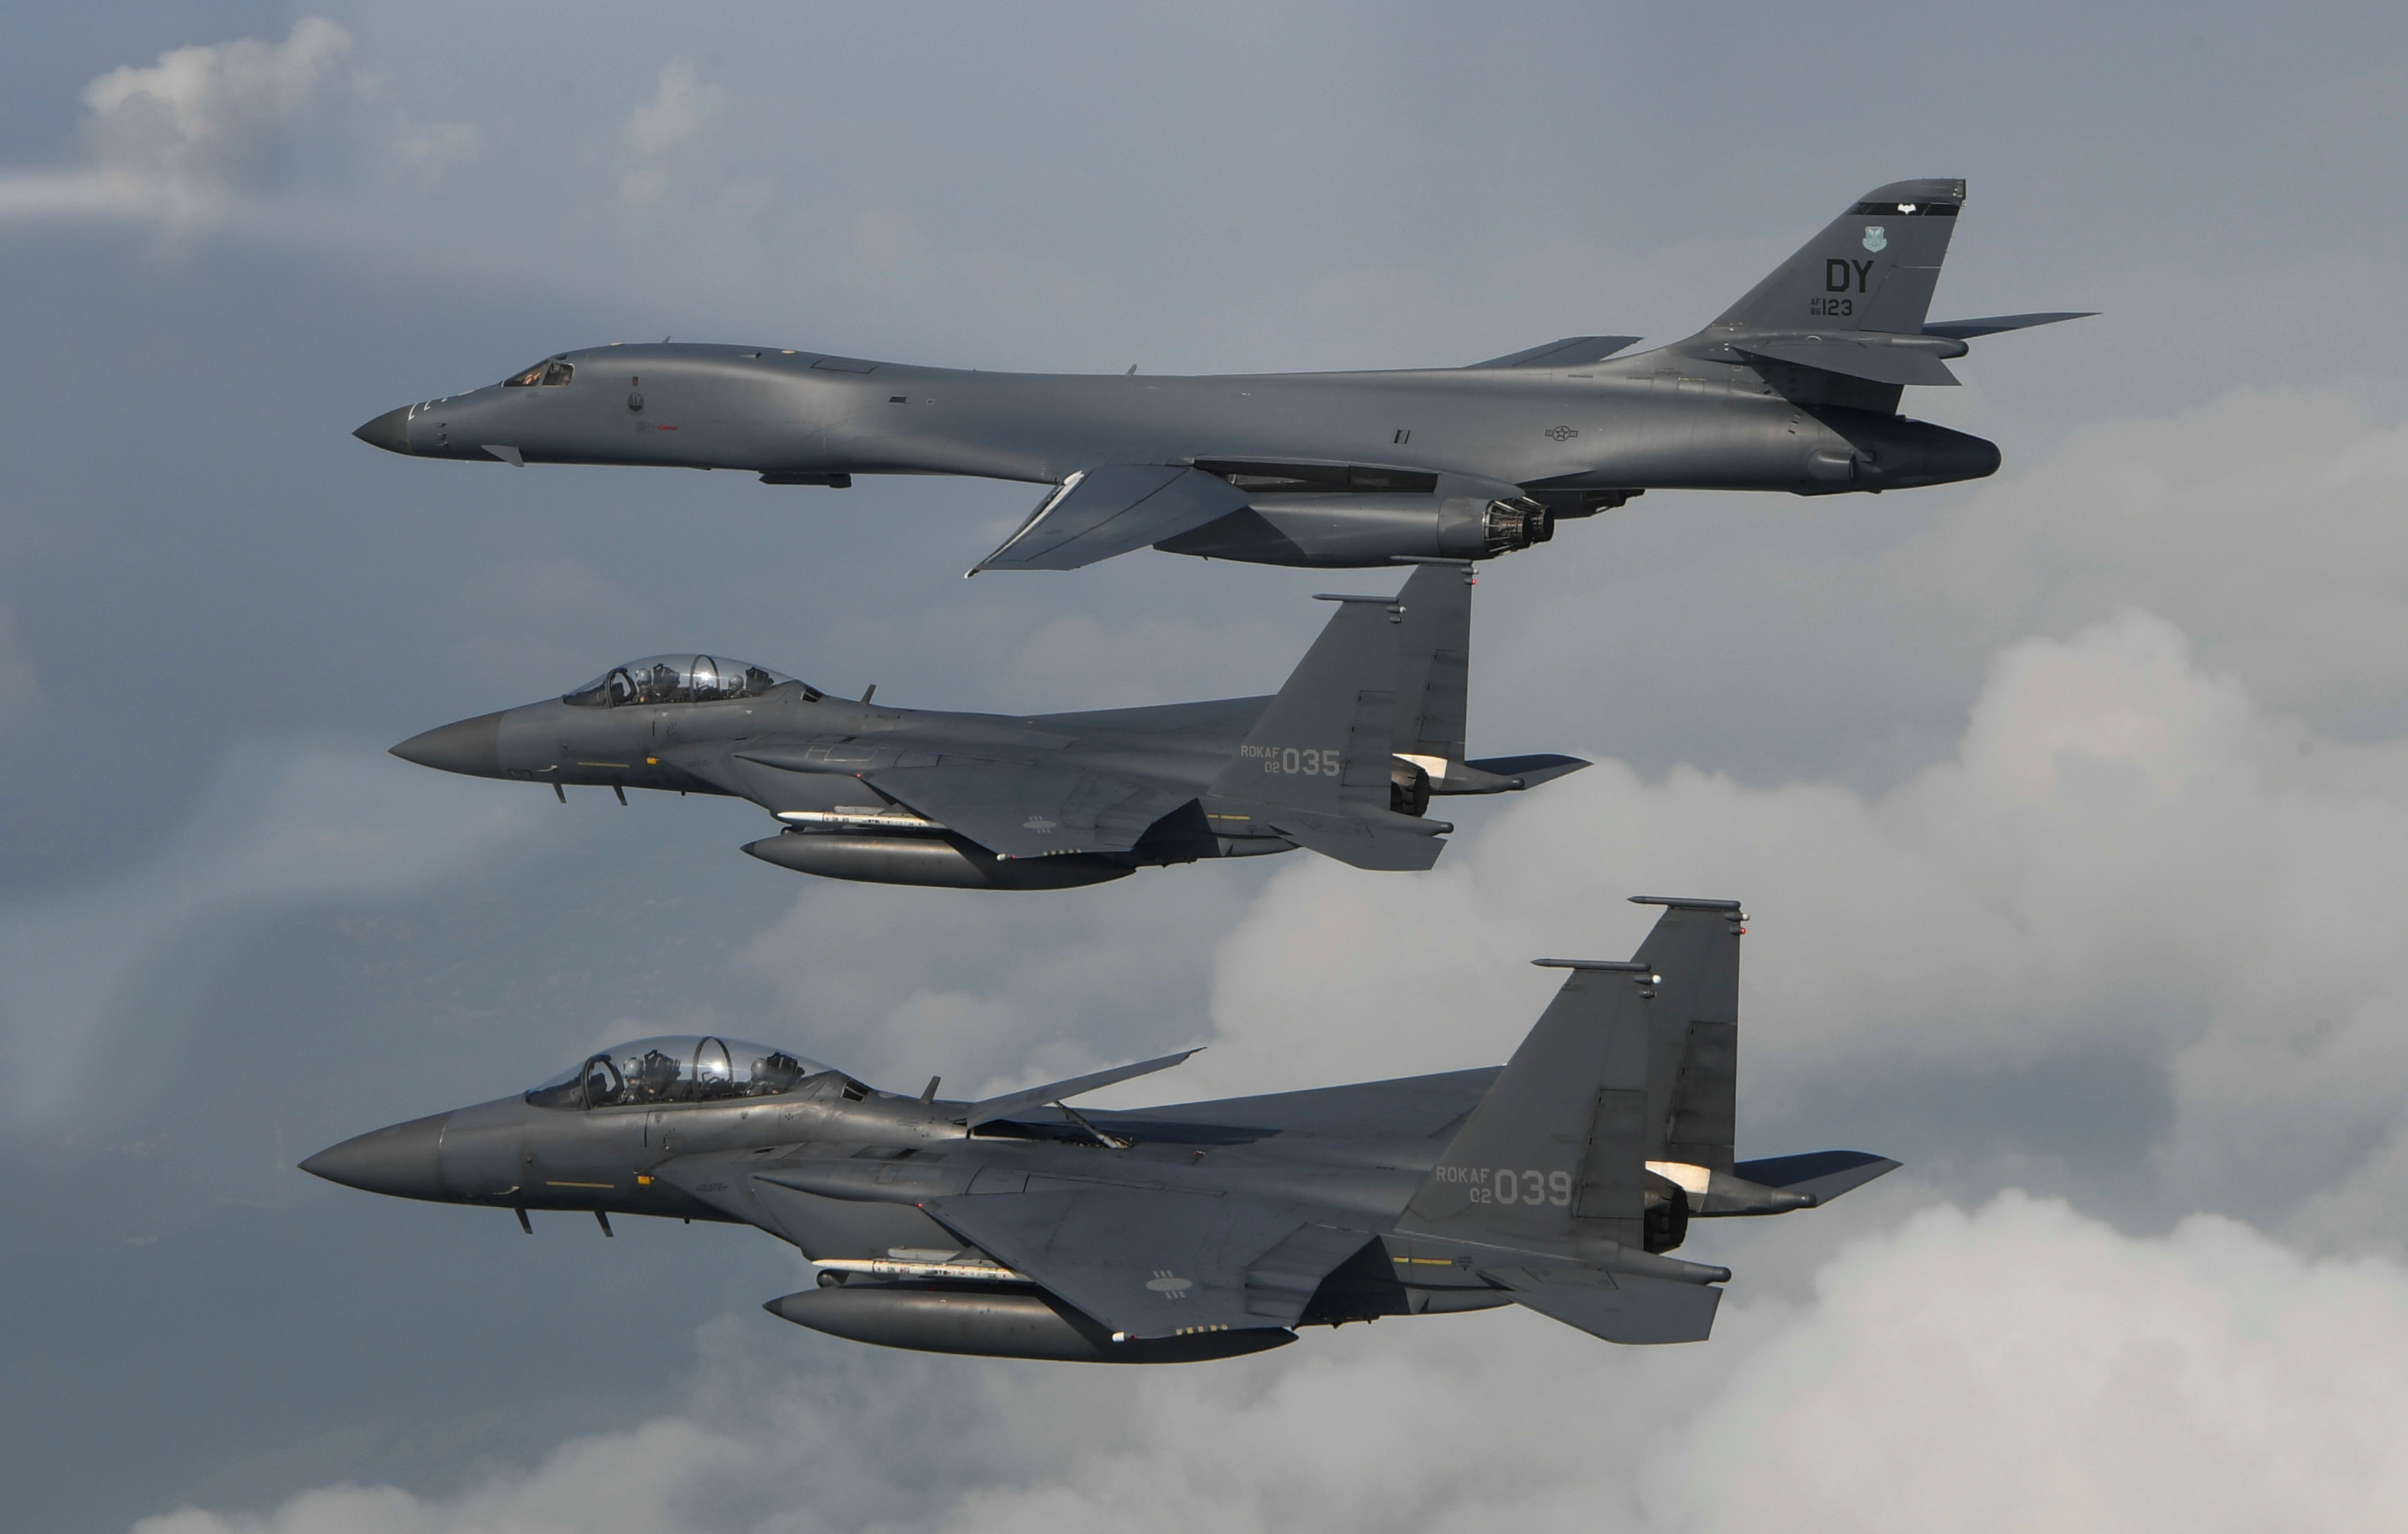 A U.S. Air Force B-1B Lancer assigned to the 9th Expeditionary Bomb Squadron, deployed from Dyess Air Force Base, Texas, is joined by Republic of Korea air force F-15s, during a 10-hour mission from Andersen Air Force Base, Guam, into Japanese airspace and over the Korean Peninsula, July 30, 2017.  Photo taken July 30, 2017.  Tech. Sgt. Kamaile Casillas/Pacific Air Forces/DVIDS/Handout via REUTERS   ATTENTION EDITORS - THIS IMAGE WAS PROVIDED BY A THIRD PARTY